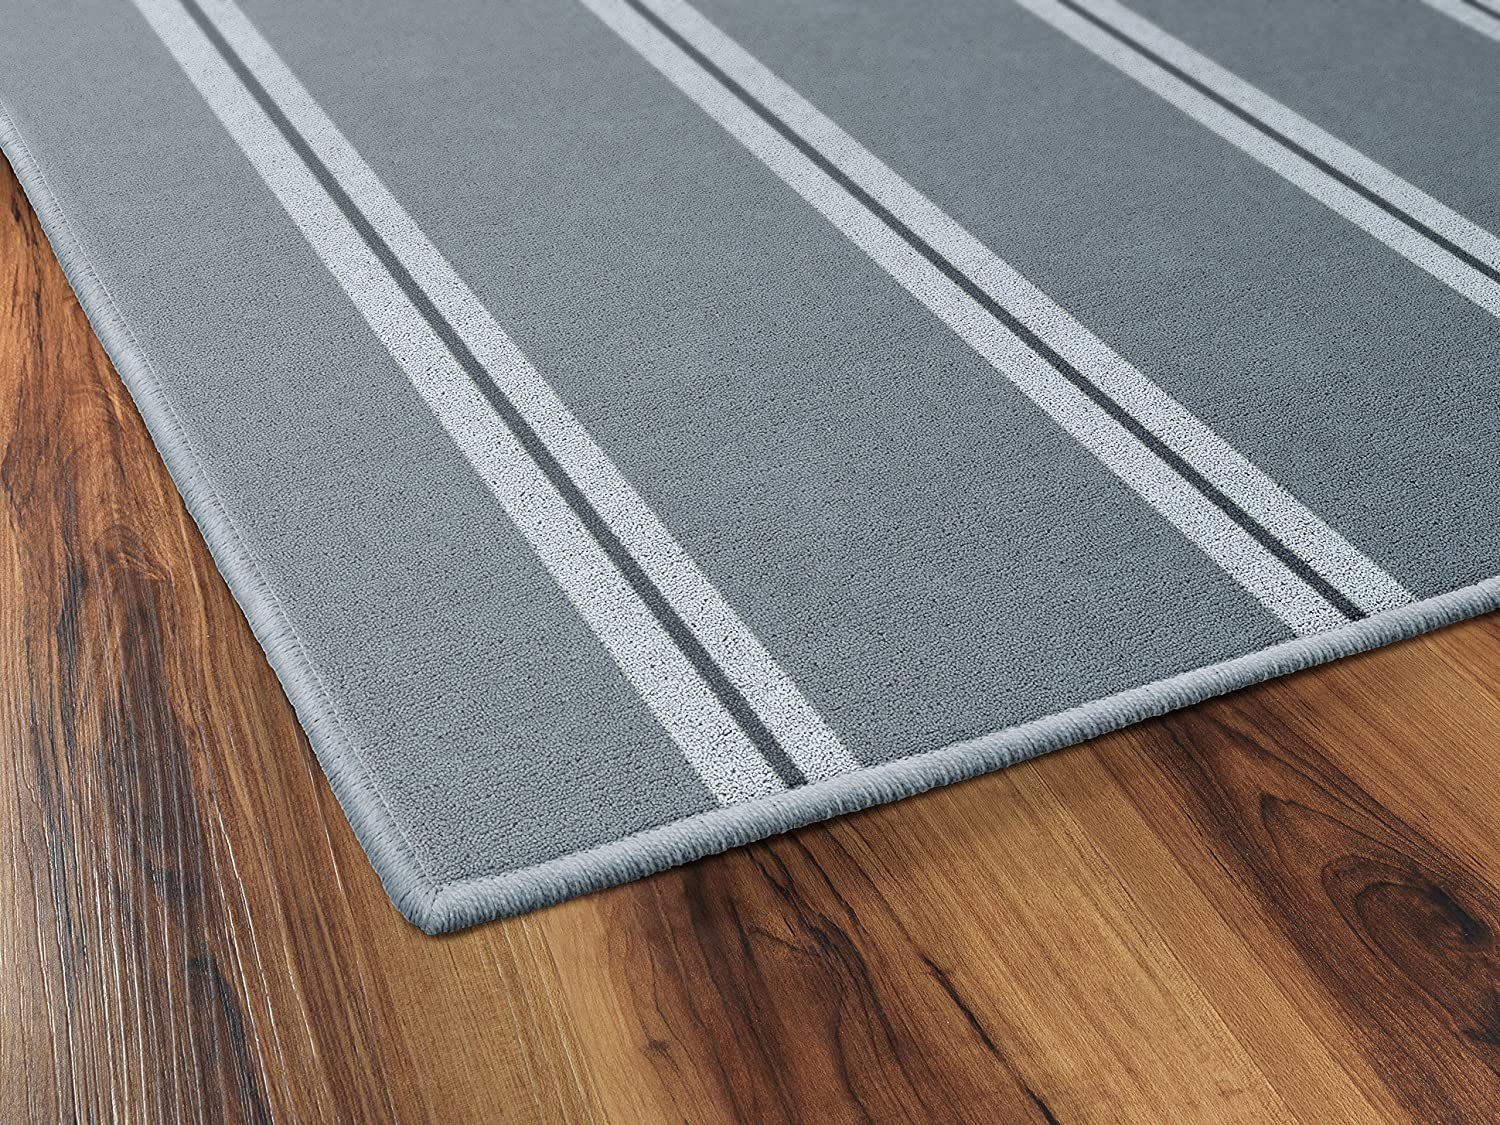 Brumlow Mills EW10190-30x46 Vertical Gray Traditional Striped Area Rug 26 x 310